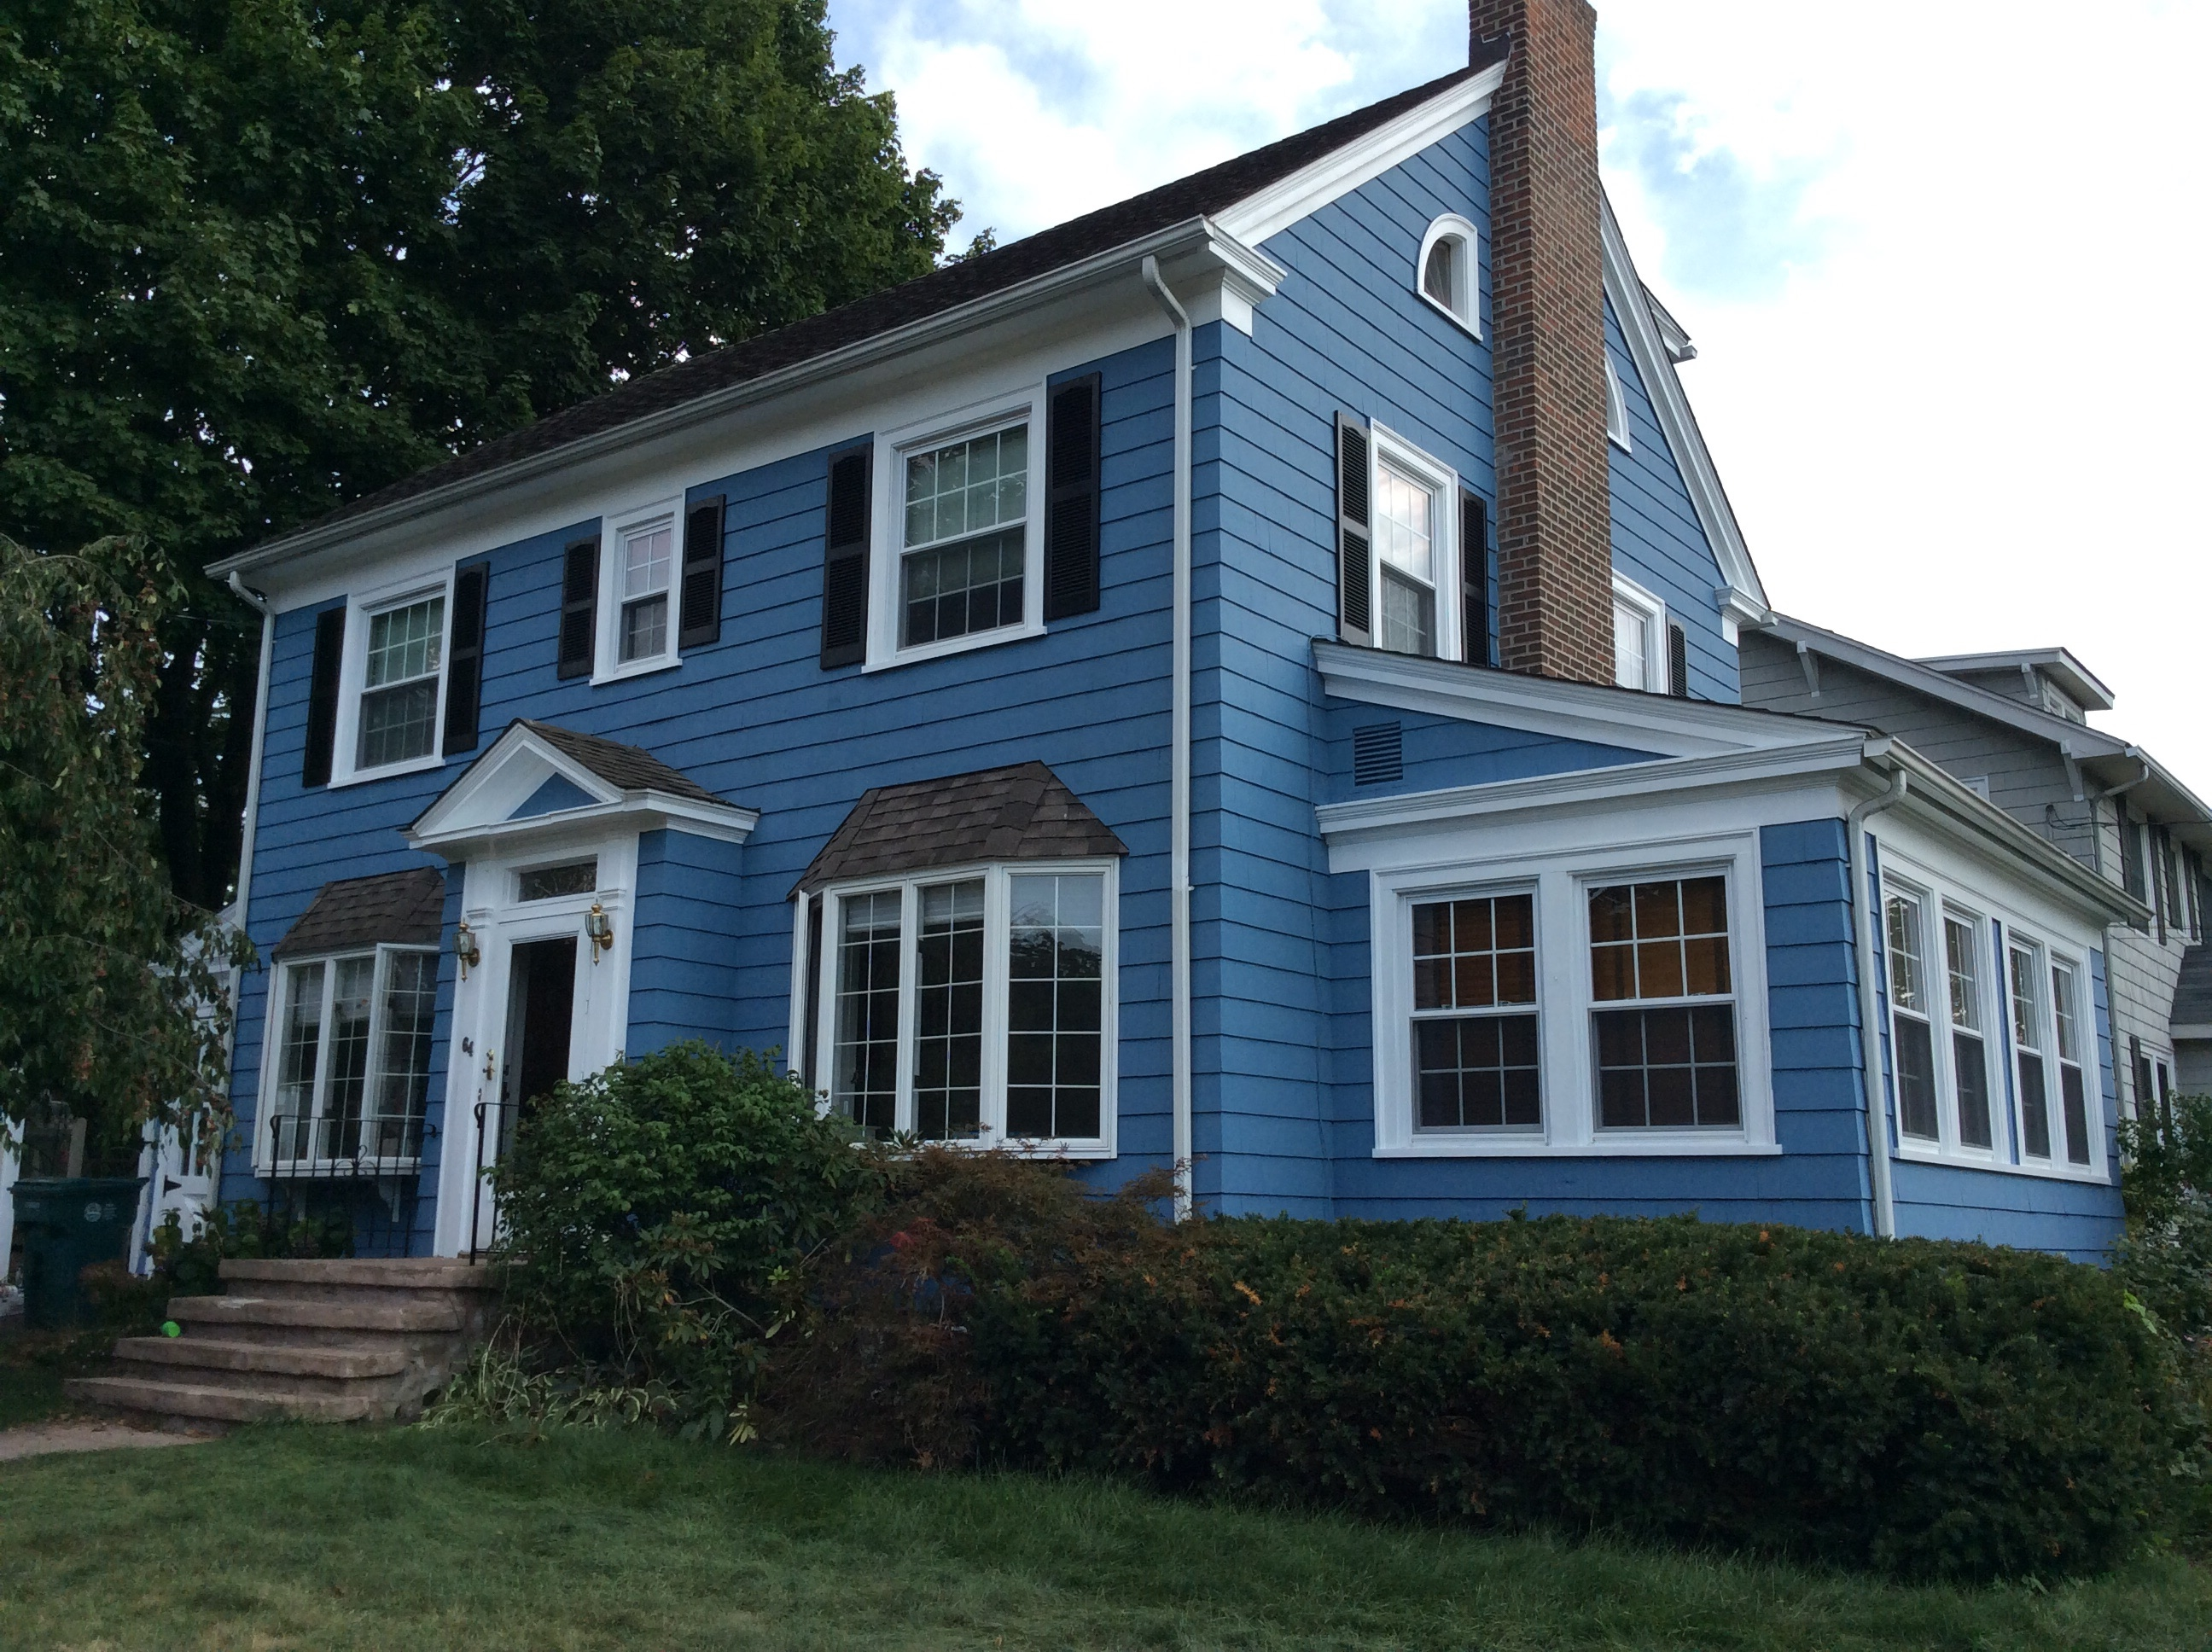 Murphys Painting Llc In Hamden Ct 06517